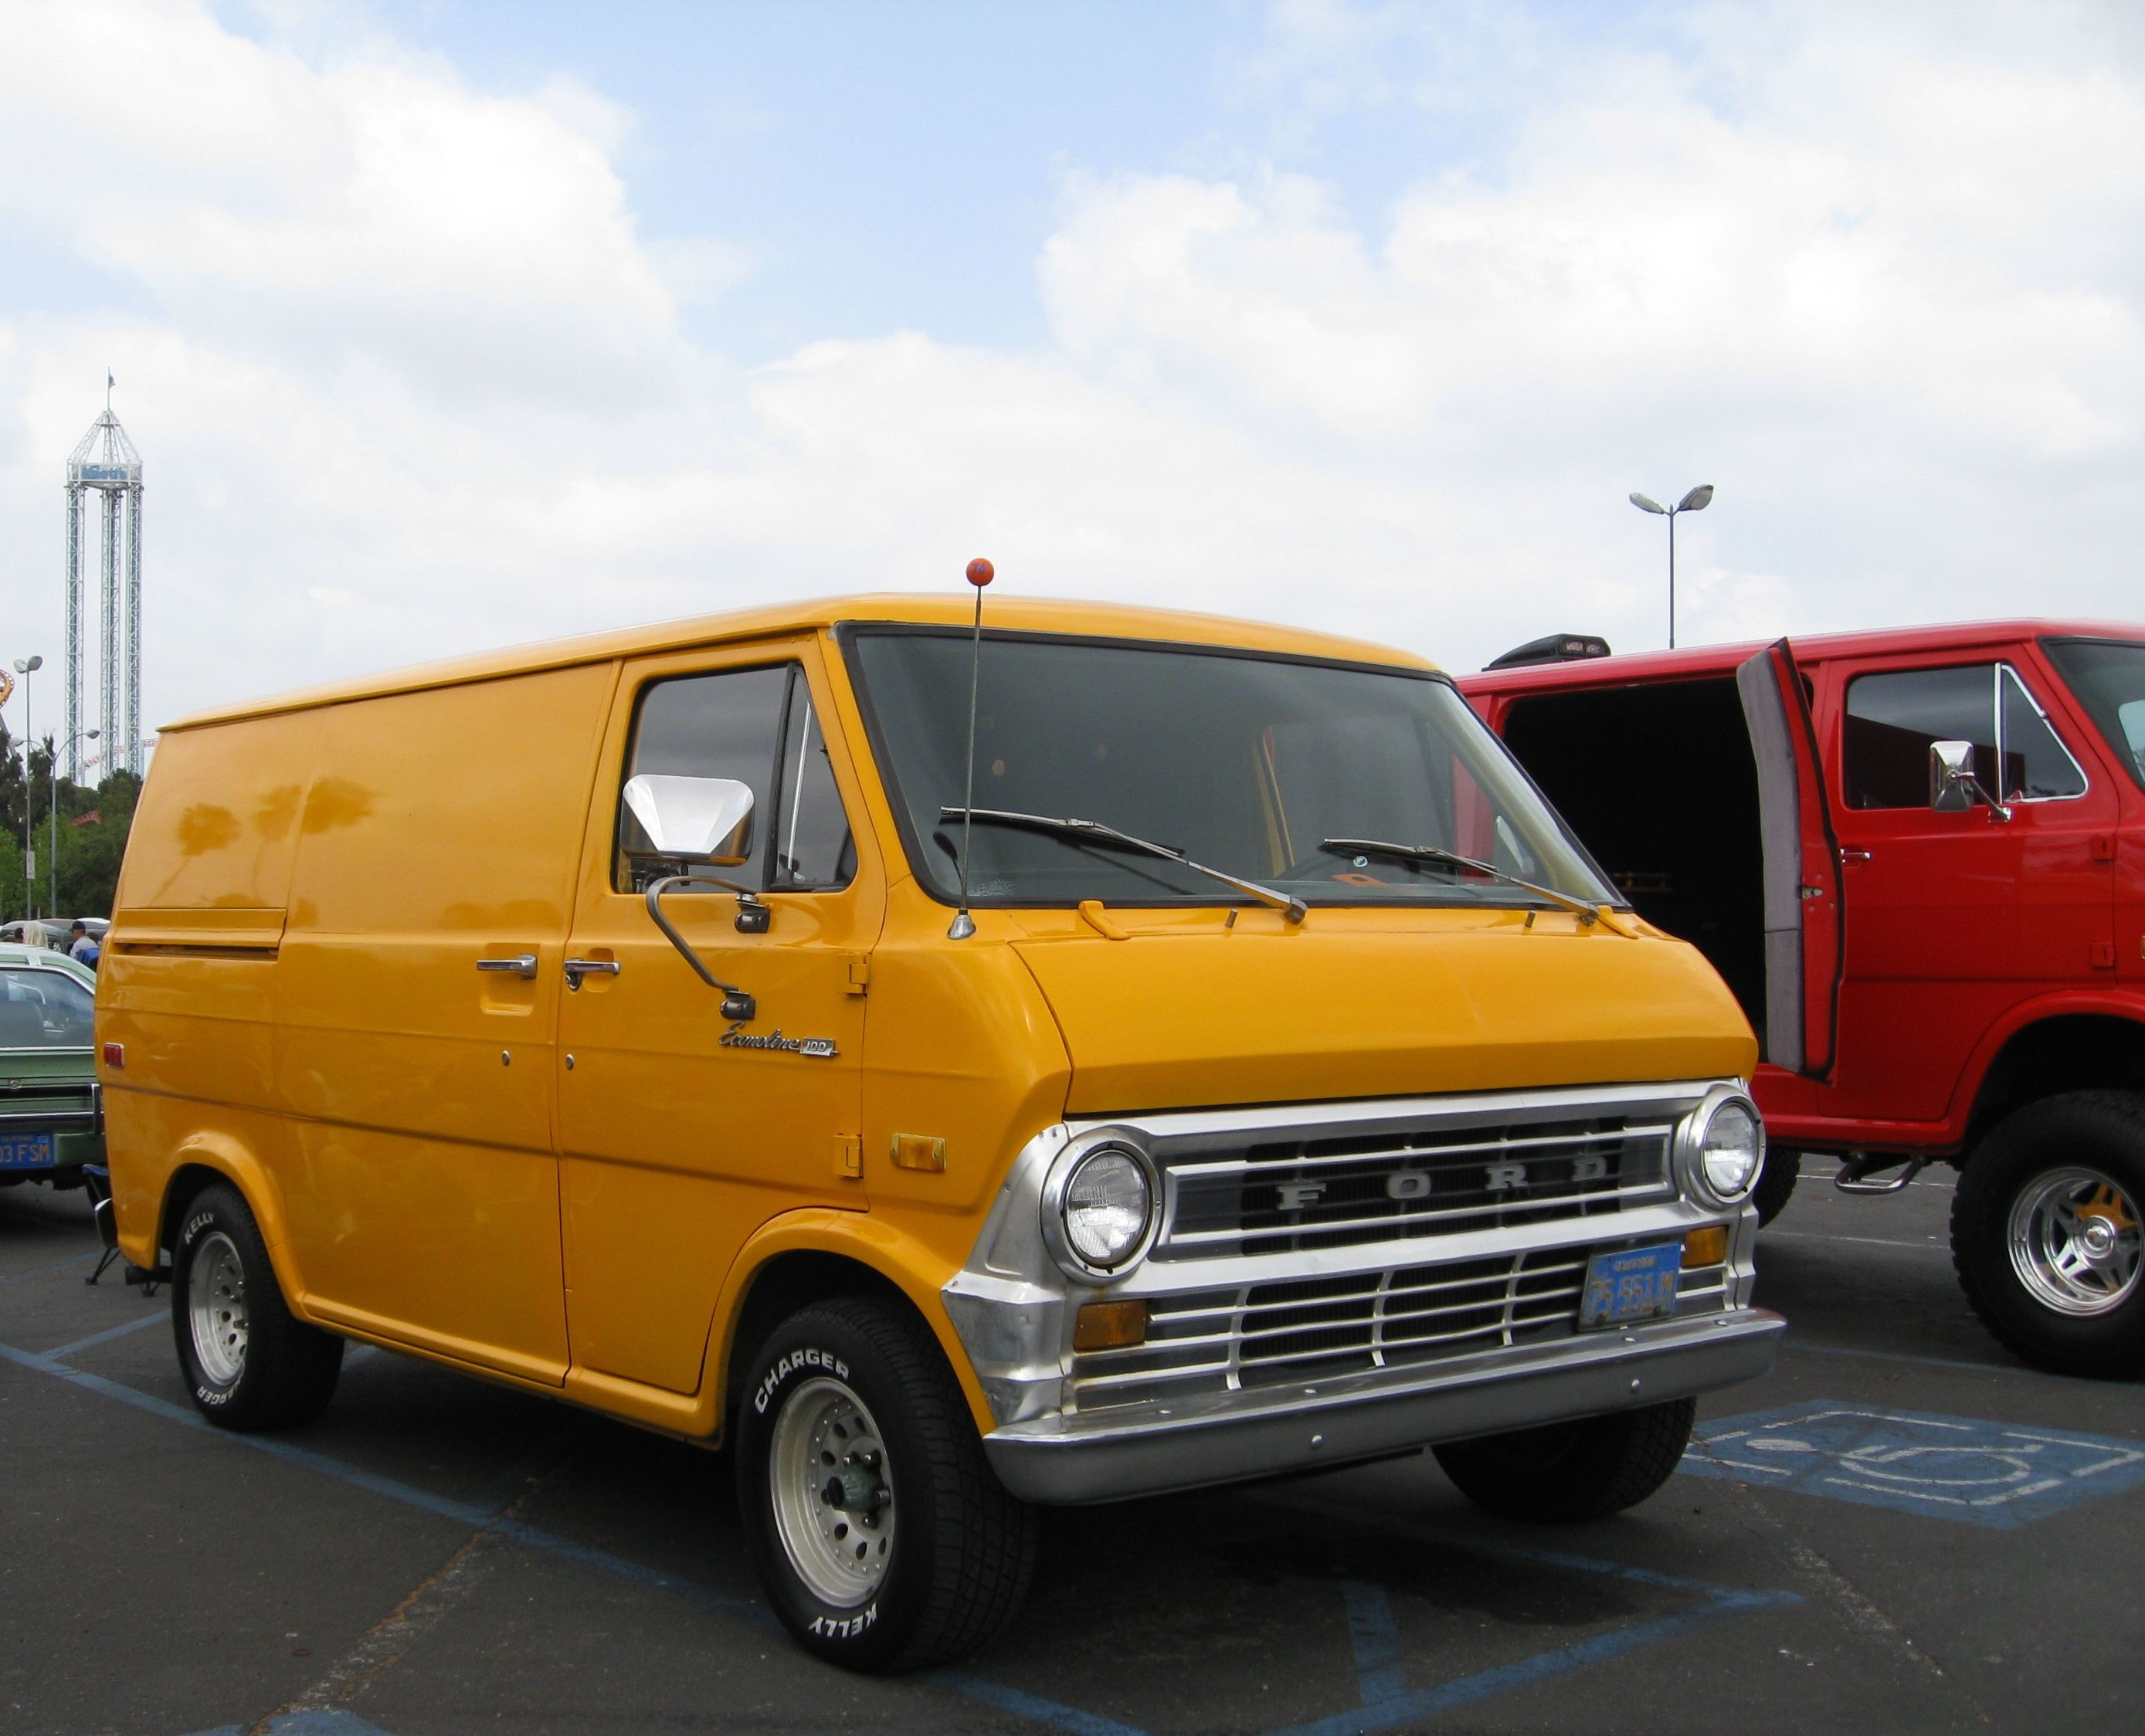 1973 Ford Econoline I Had One Very Much Like This With A 302 And